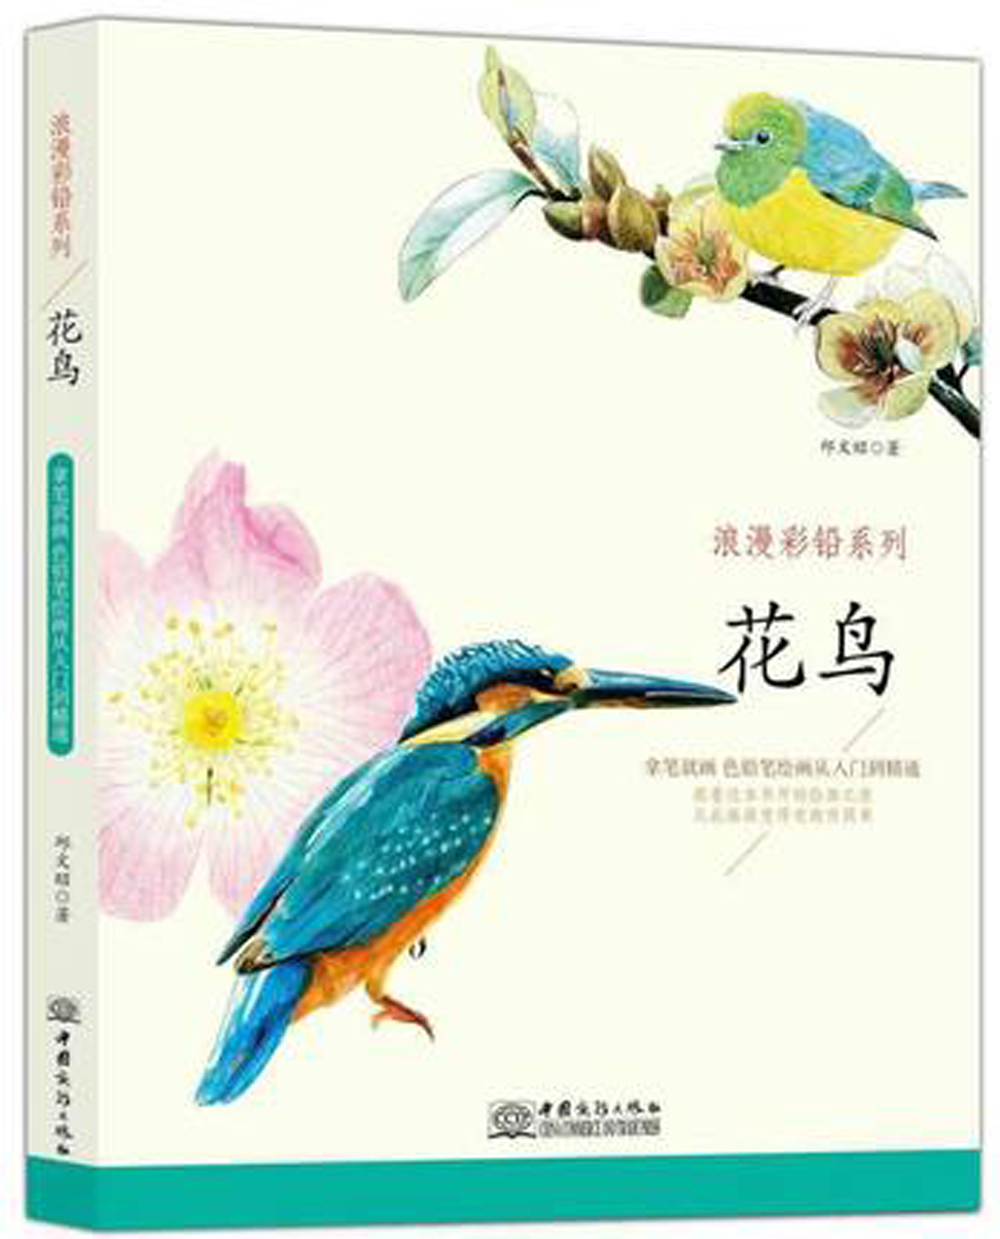 Chinese Color Pen Pencil Drawing book about Beautiful Flower and Birds / chinese art techniques Painting Coloring Book chinese pencil drawing book 38 kinds of flower painting watercolor color pencil textbook tutorial art book